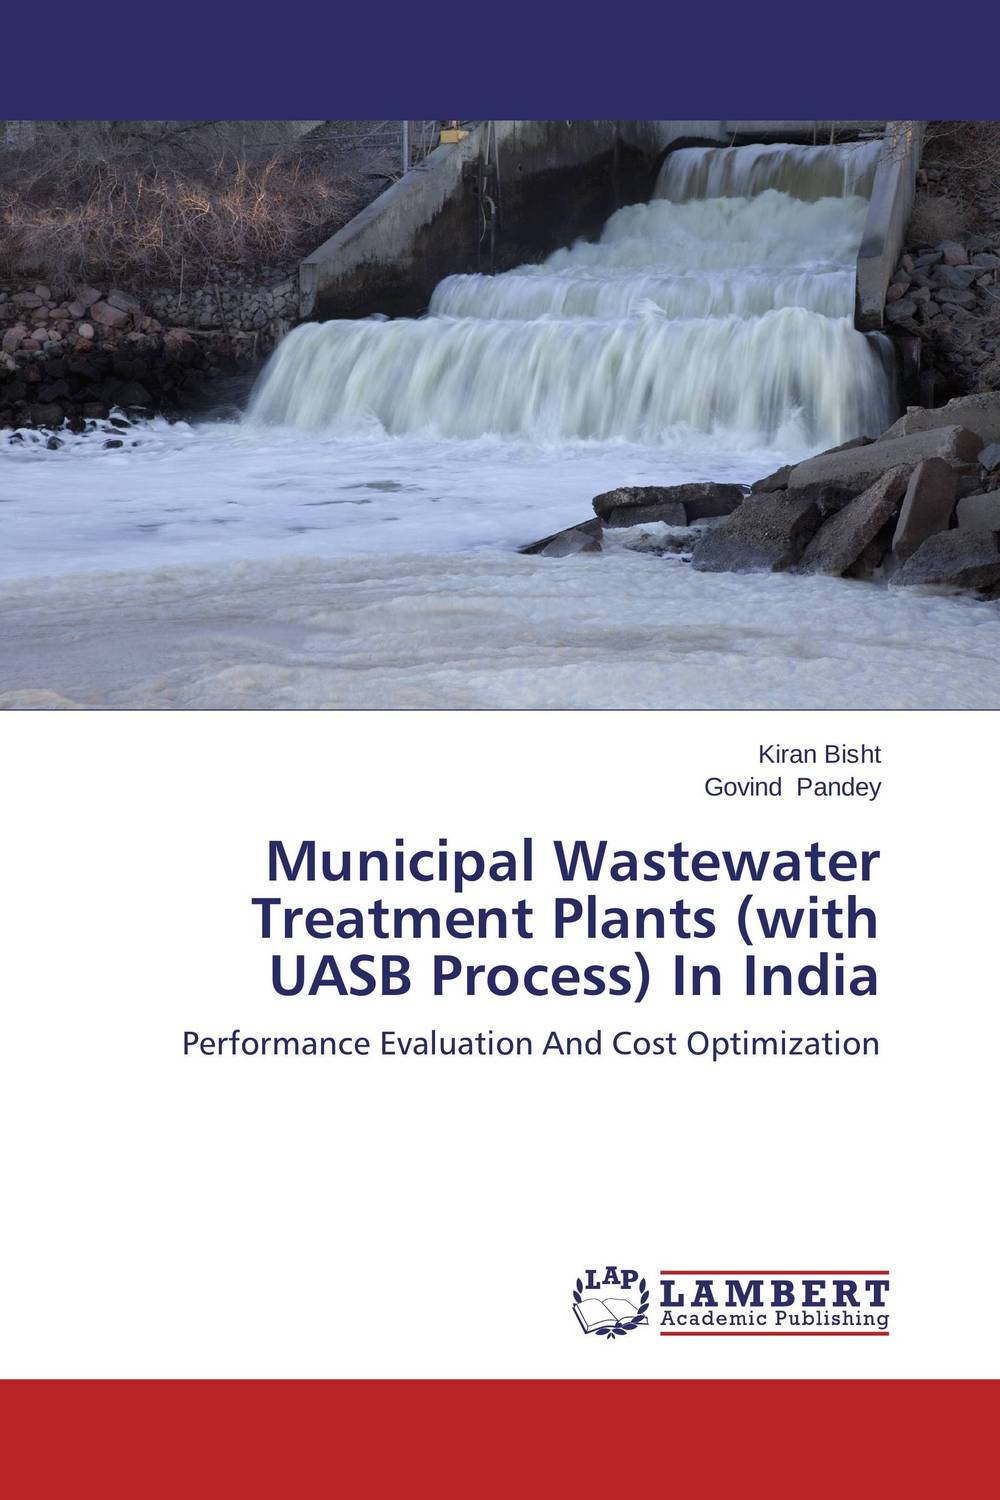 Municipal Wastewater Treatment Plants (with UASB Process) In India клещи topex 16b440